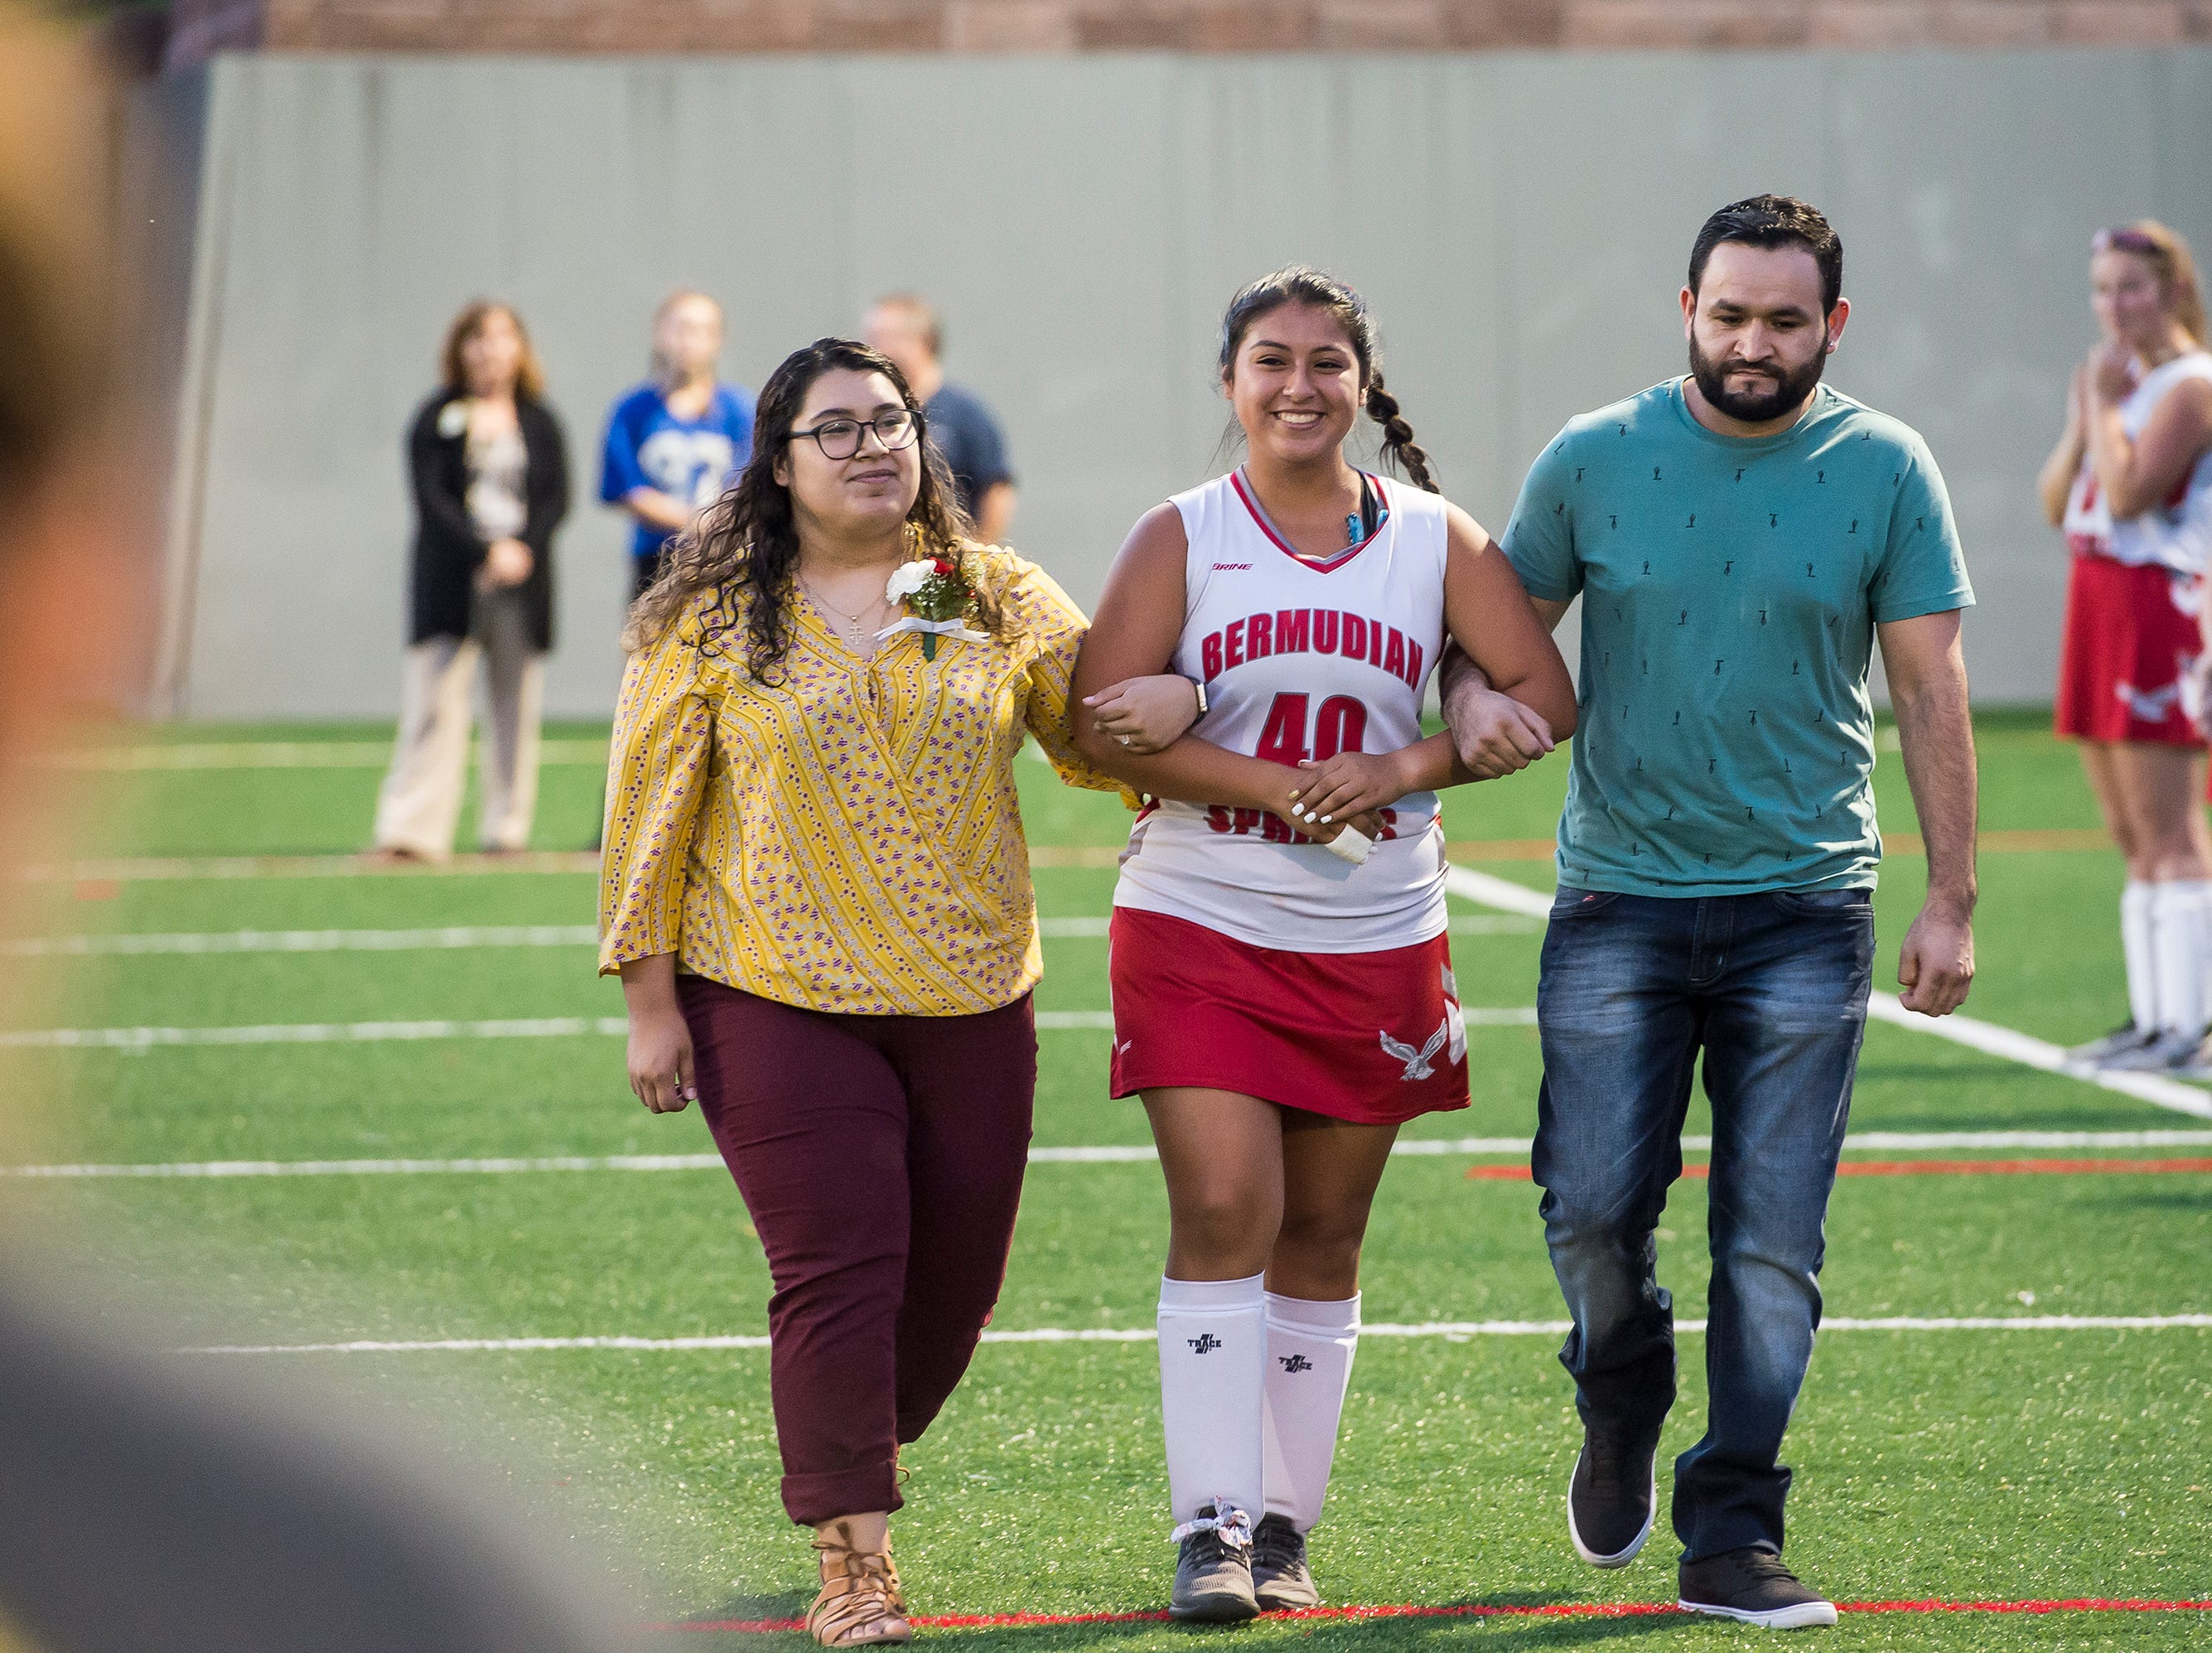 Bermudian Springs senior Cindy Rivera is recognized during a senior appreciation night following a game against Littlestown on Tuesday, October 9, 2018.